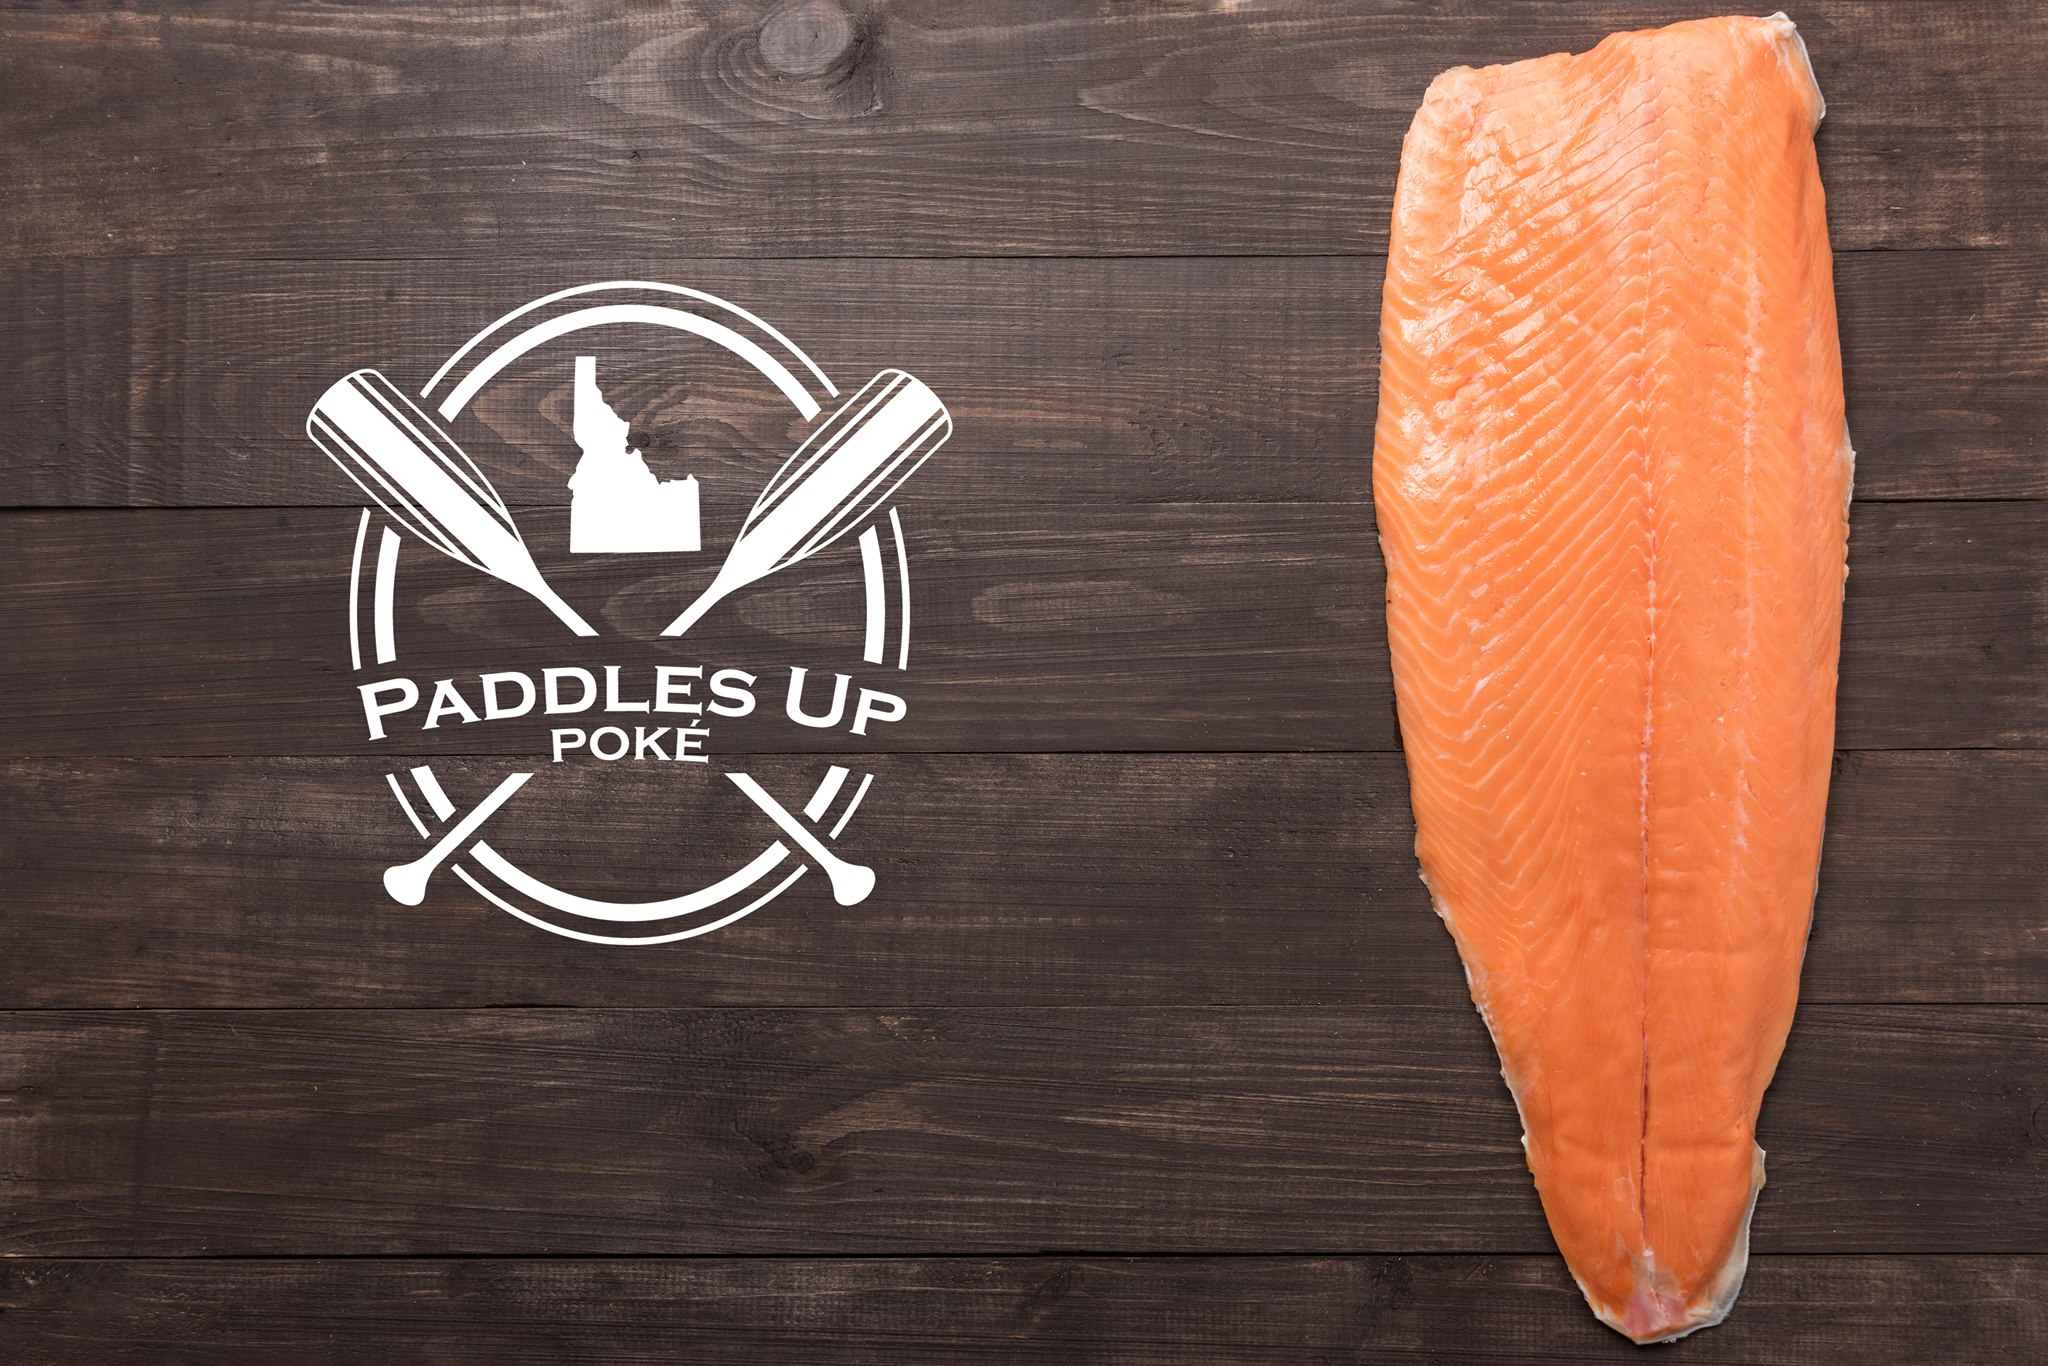 1 Year Anniversary Festivities and New Menu Items - On May 1, 2018, Paddles Up will be officially open for one year! We are so excited to be a part of this great community and can't believe how quick this year has gone by.Click HERE to read full blog!